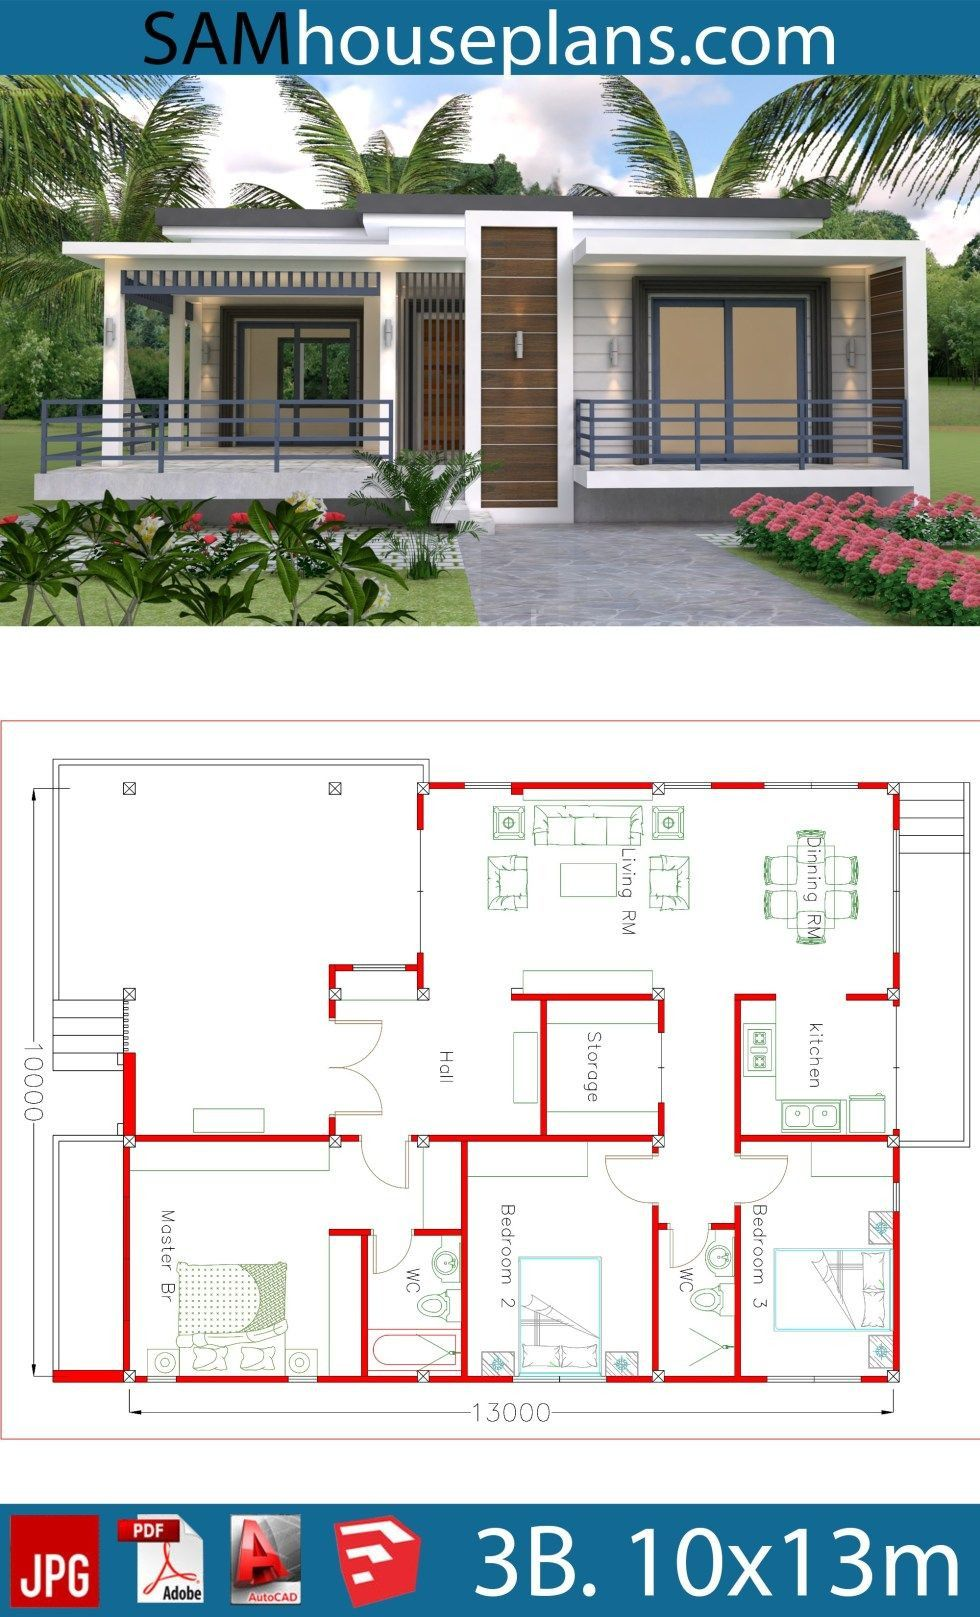 Elegant Small House Plans One Story Modern House Plans 10x13m With 3 Bedrooms In 2020 Beautiful House Plans Small Modern House Plans My House Plans